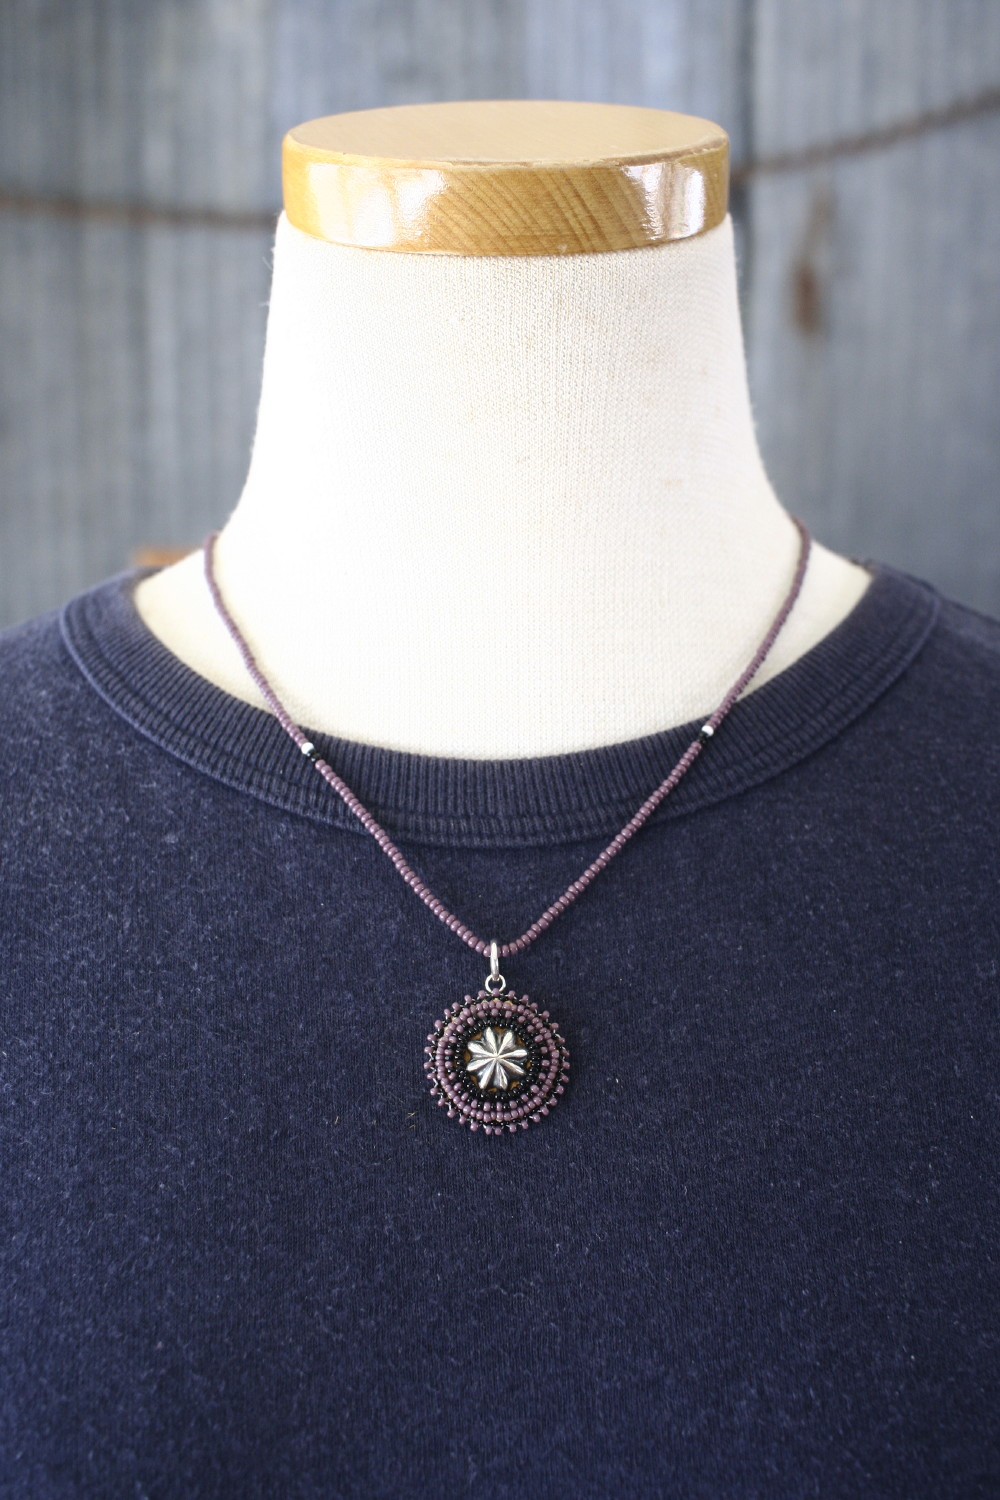 beads necklace  ビーズネックレス